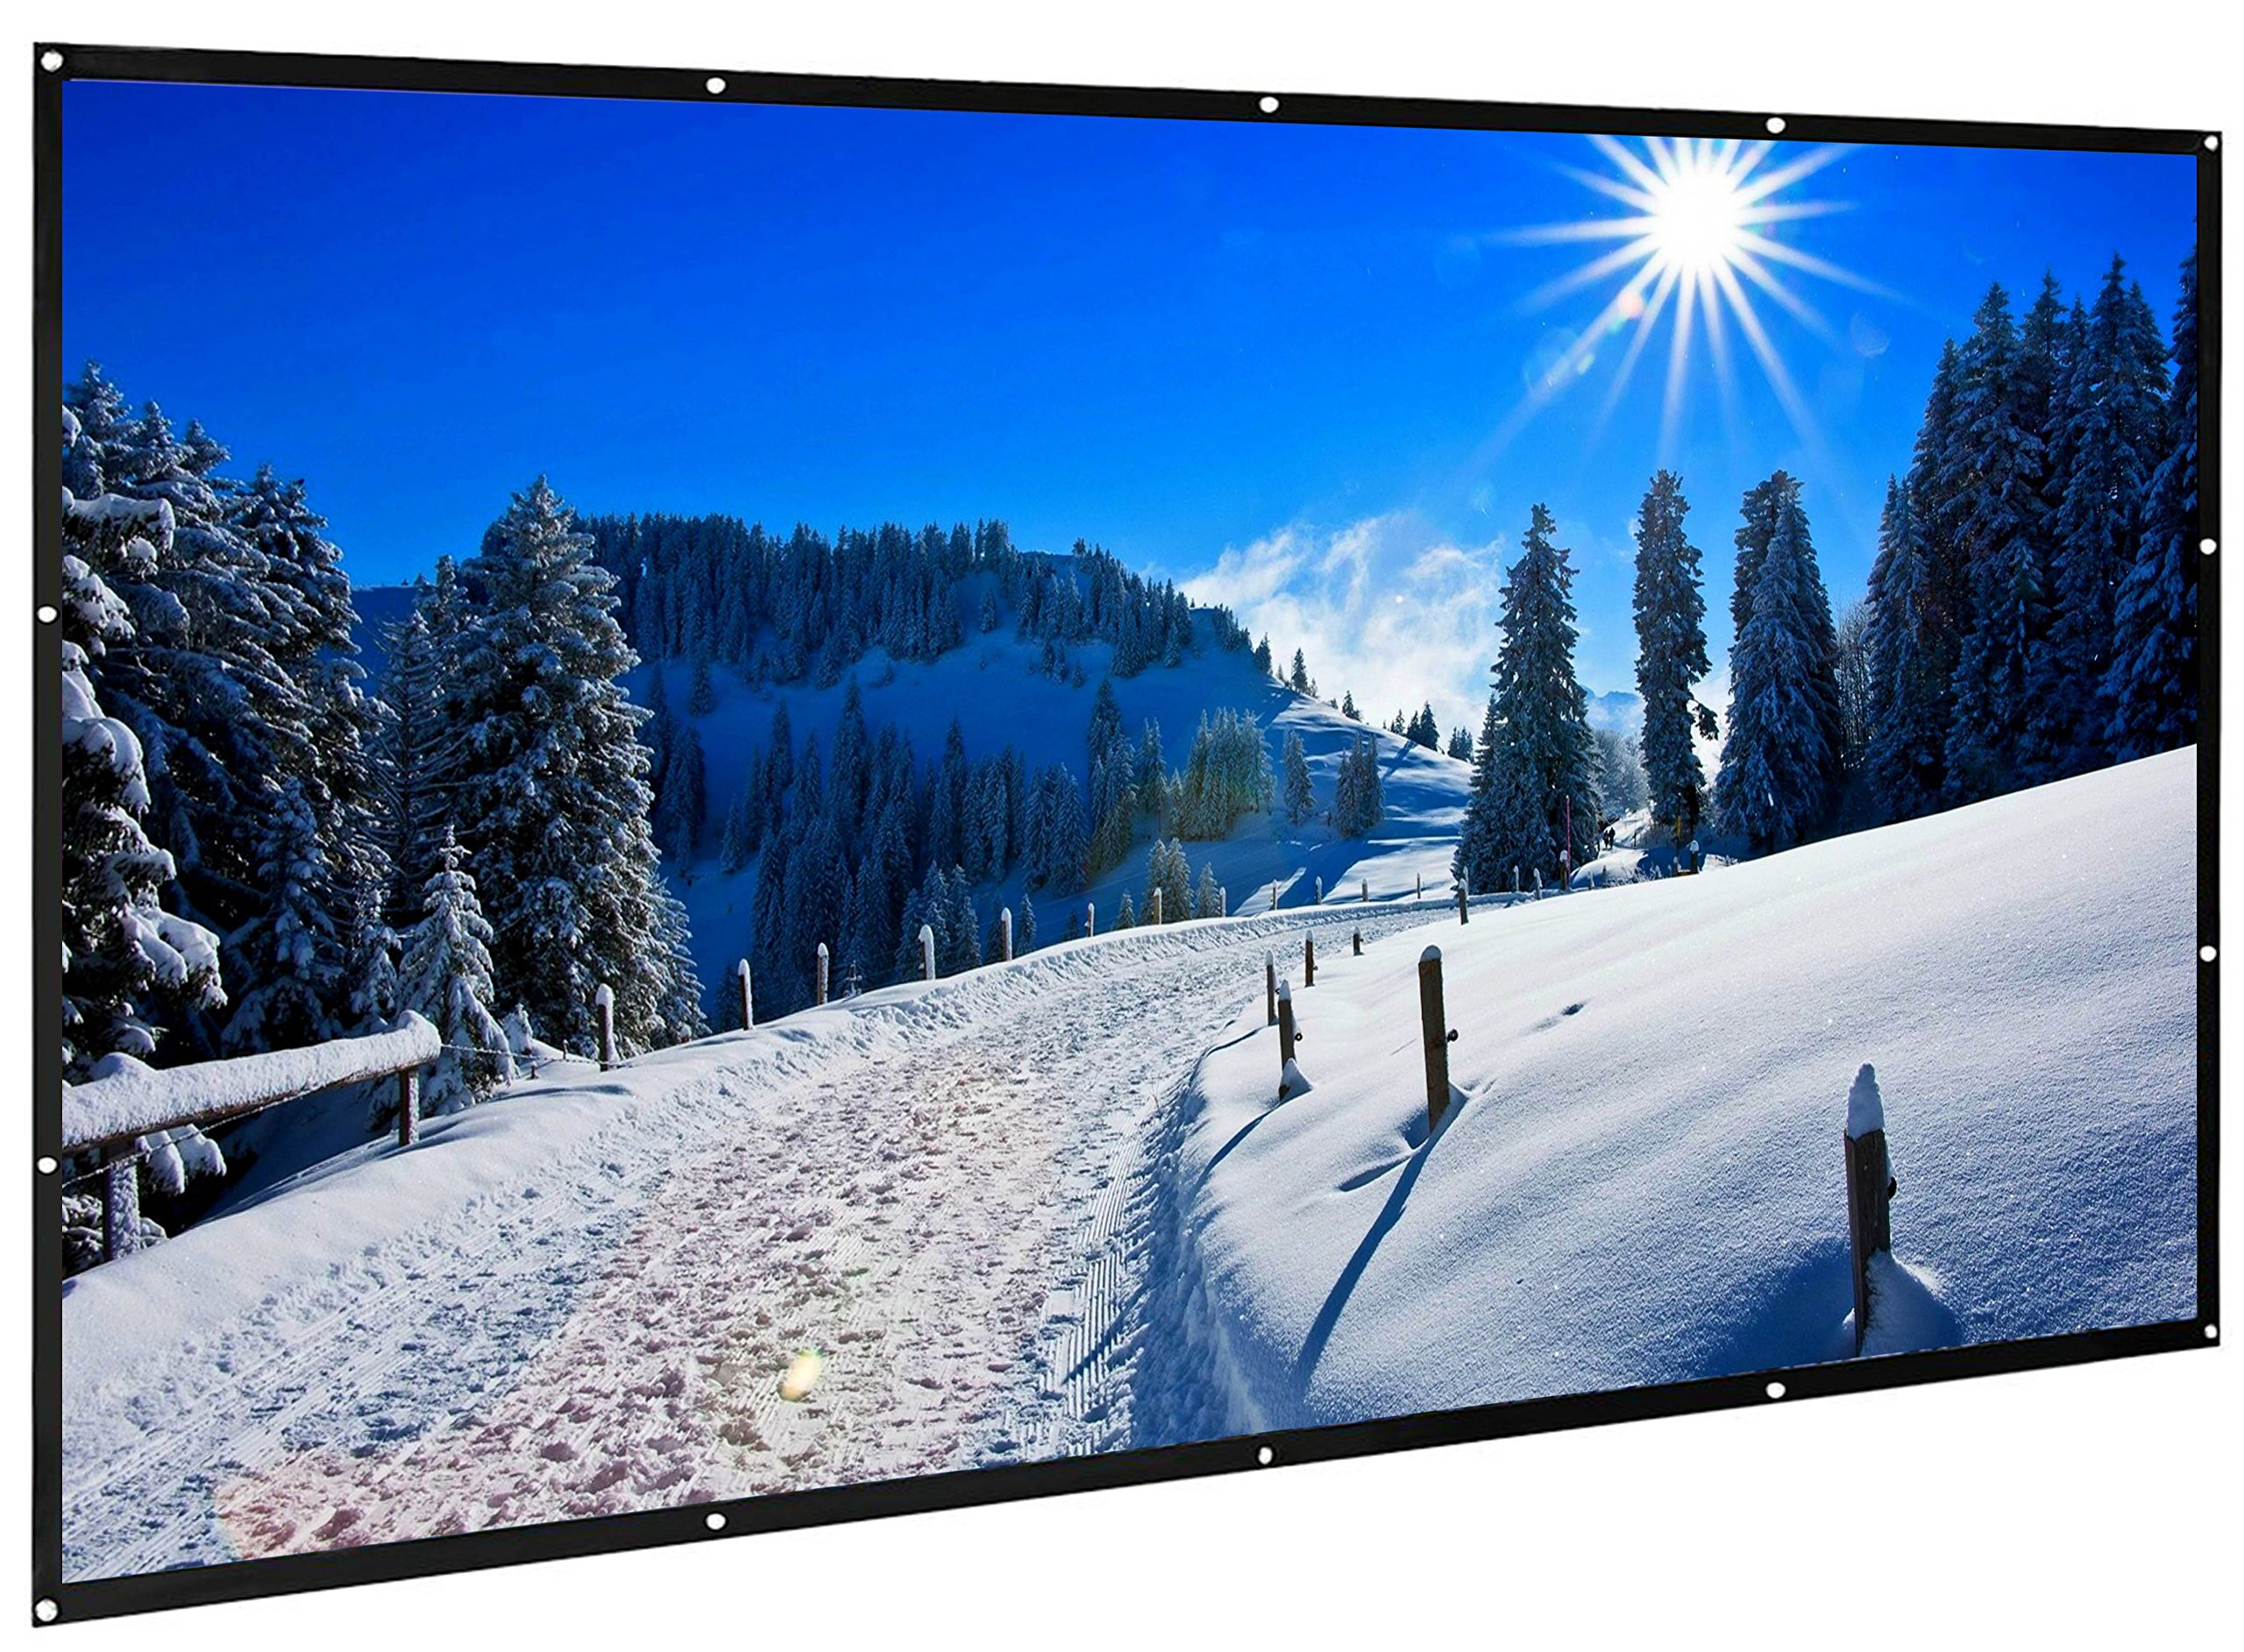 120 inch Projection Screen 16:9 HD Portable Projection Display Movie Screen DJ Screen Foldable Anti-Crease Portable Projector Movies Screen Outdoor Camping Theater, Version